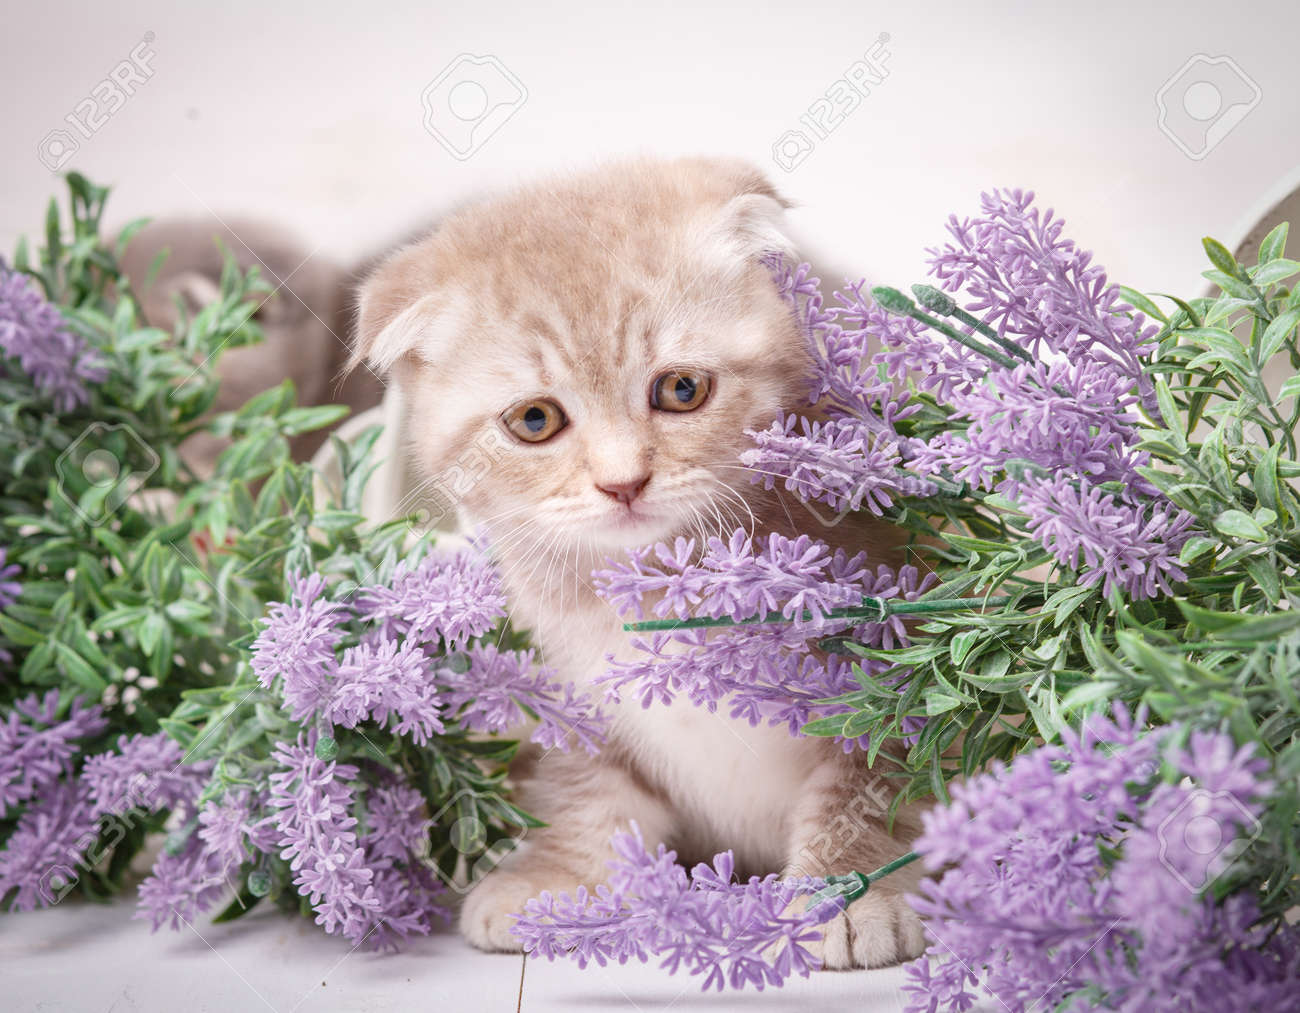 Cream-colored Scottish Kitten Sitting In A Bouquet Of Lavender ...